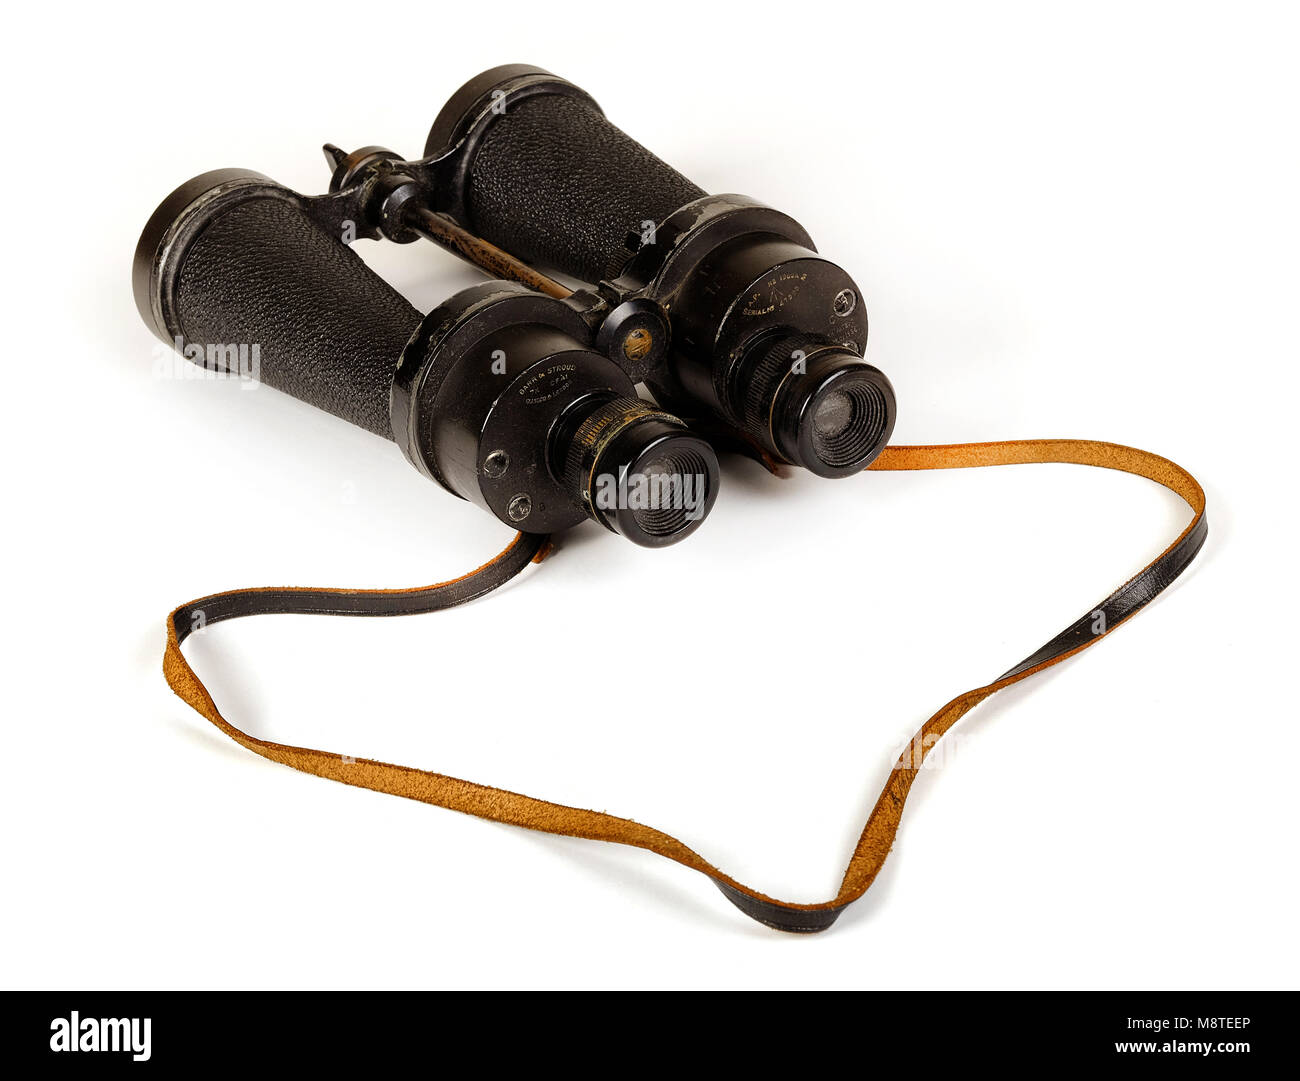 WW2 British Royal Navy binoculars made by Barr & Stroud (Glasgow and London) - Stock Image